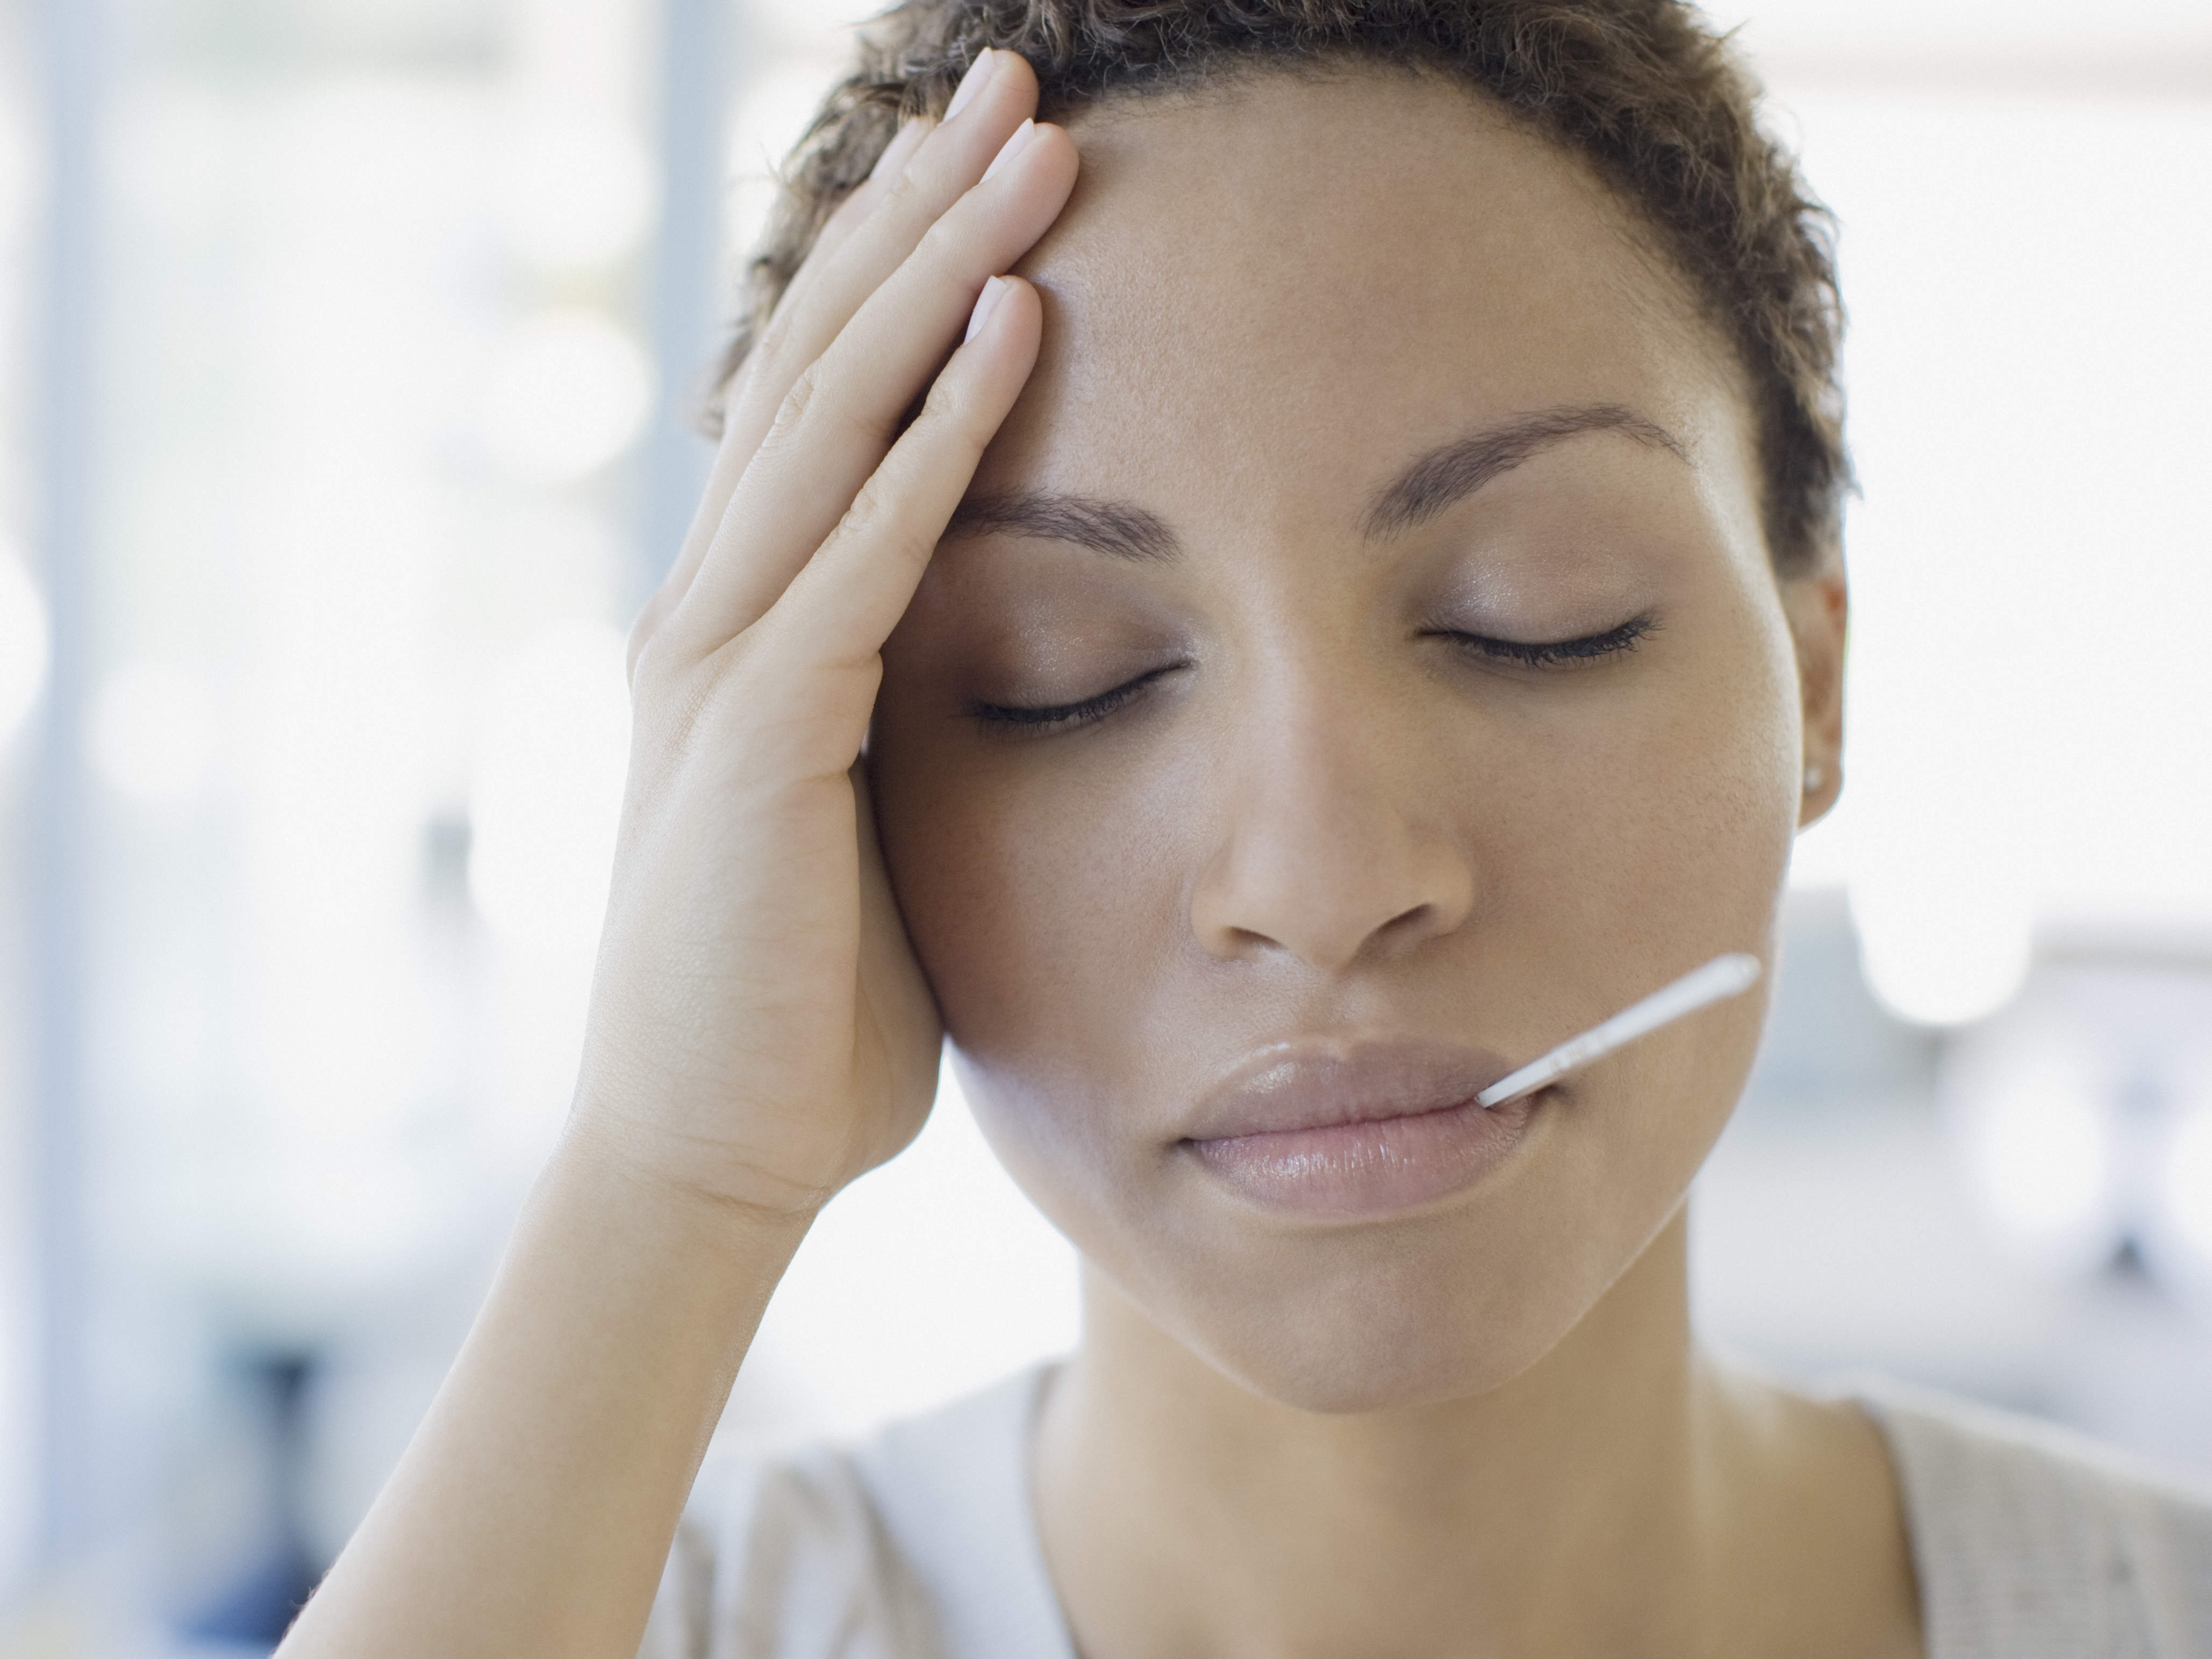 woman feeling sick with thermometer in mouth